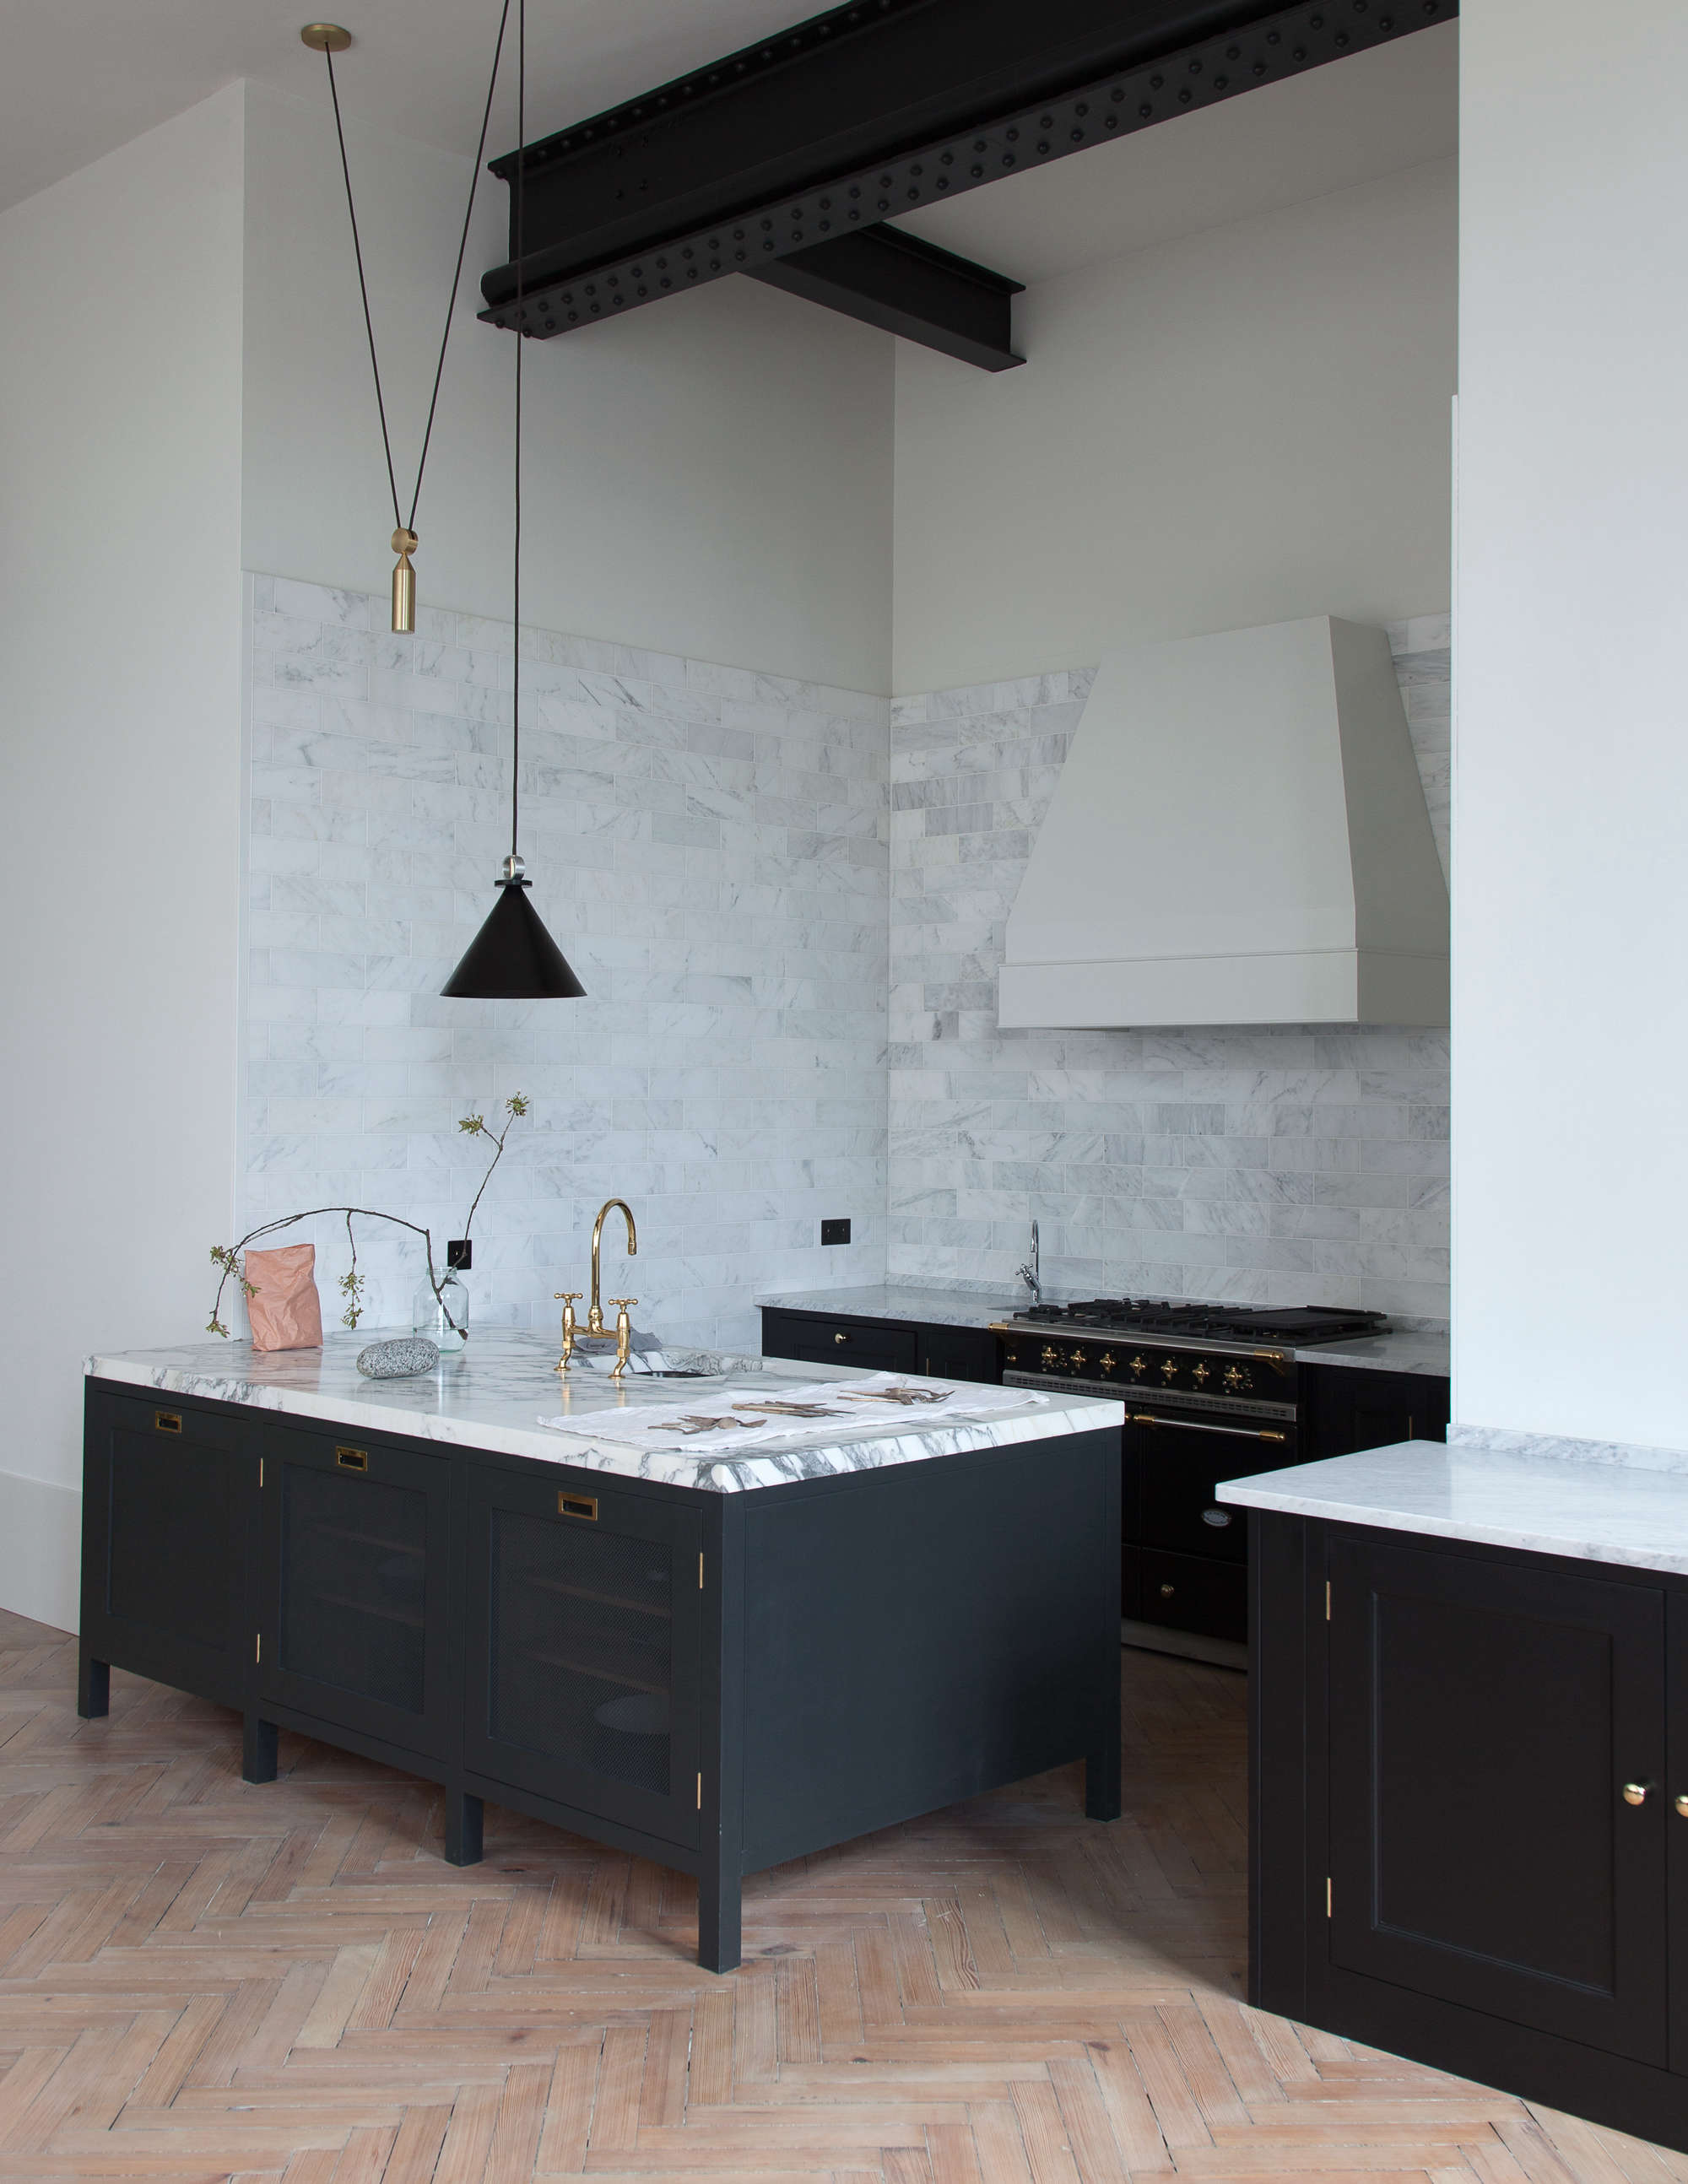 now available in the us: uk design company plain english's kitchens | remodelis 10